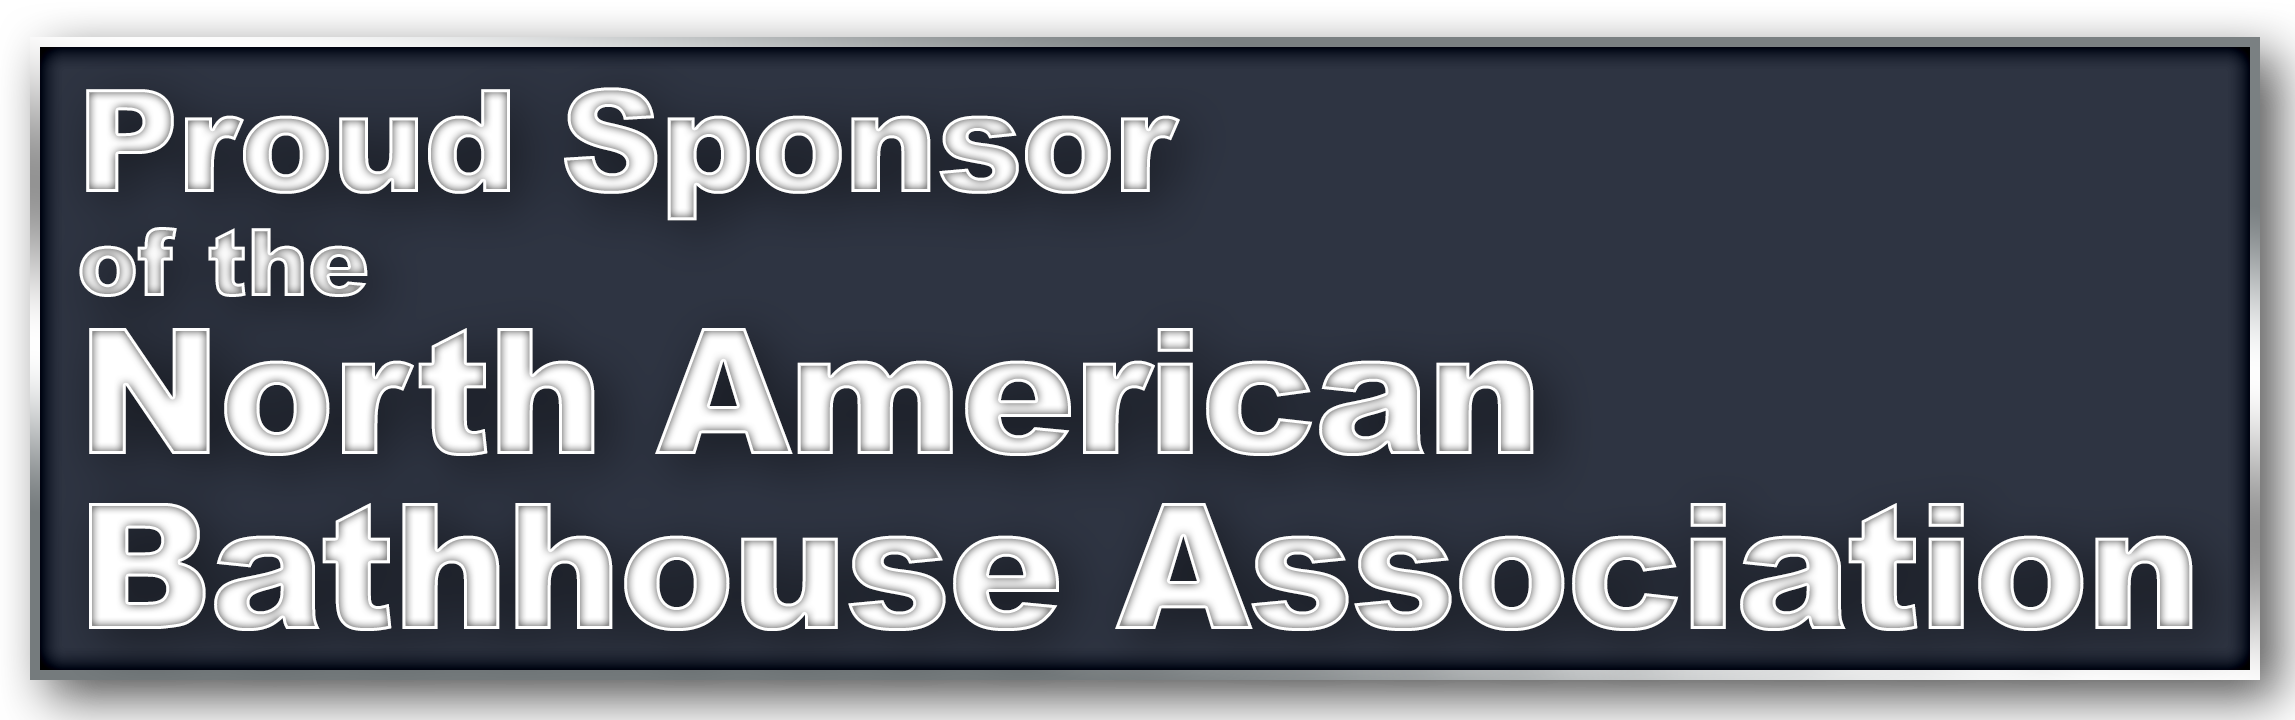 Proud Sponsor of the North American Bathhouse Association